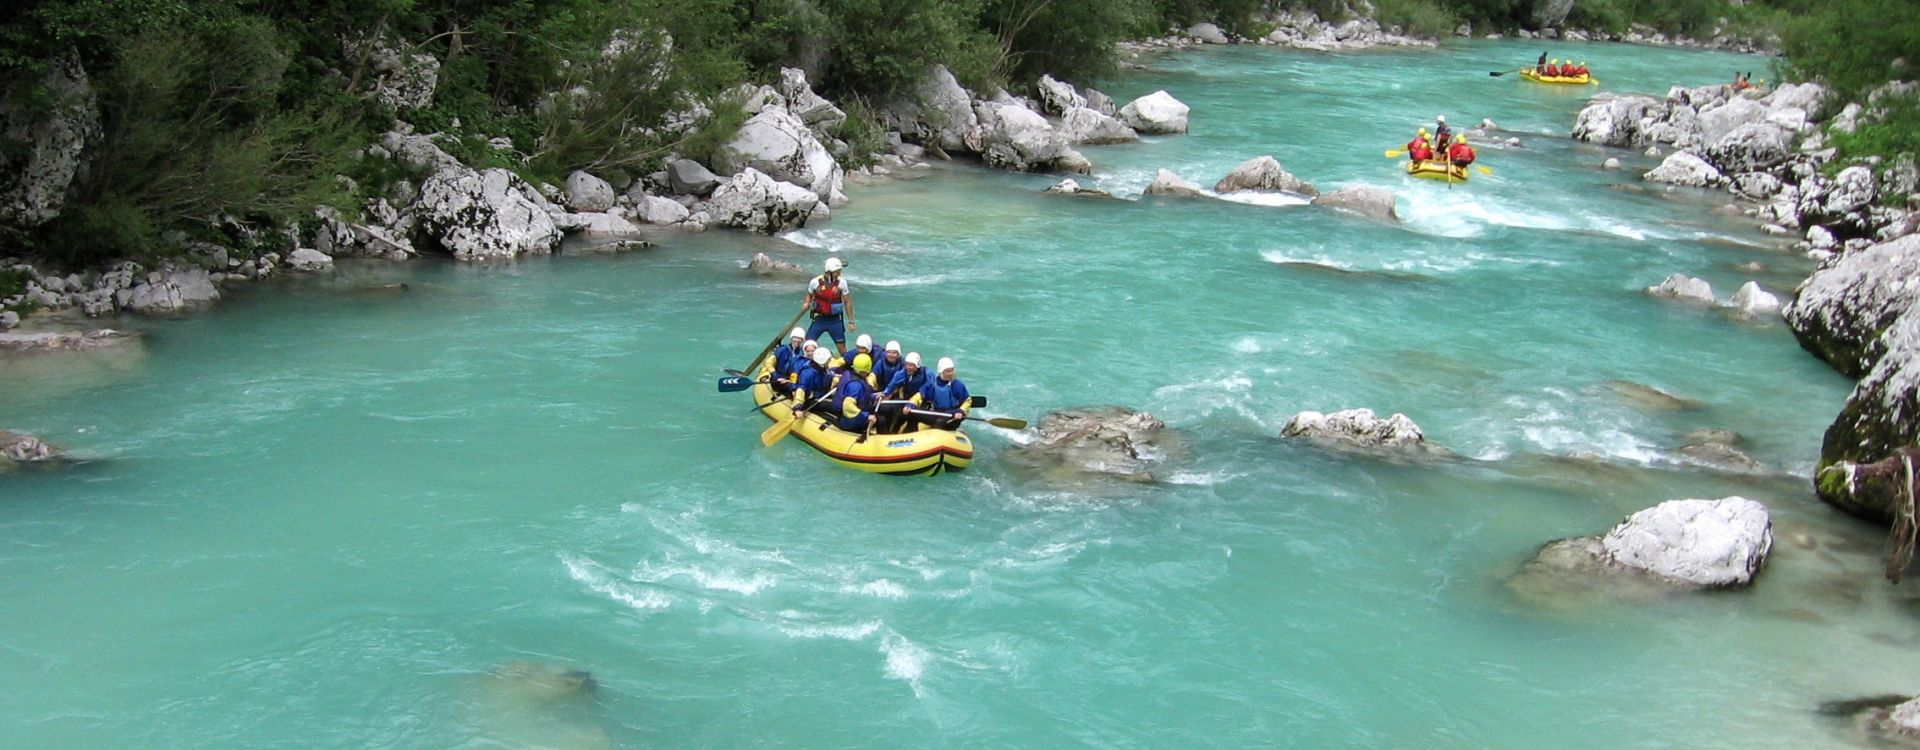 rafting soca valley slovenia